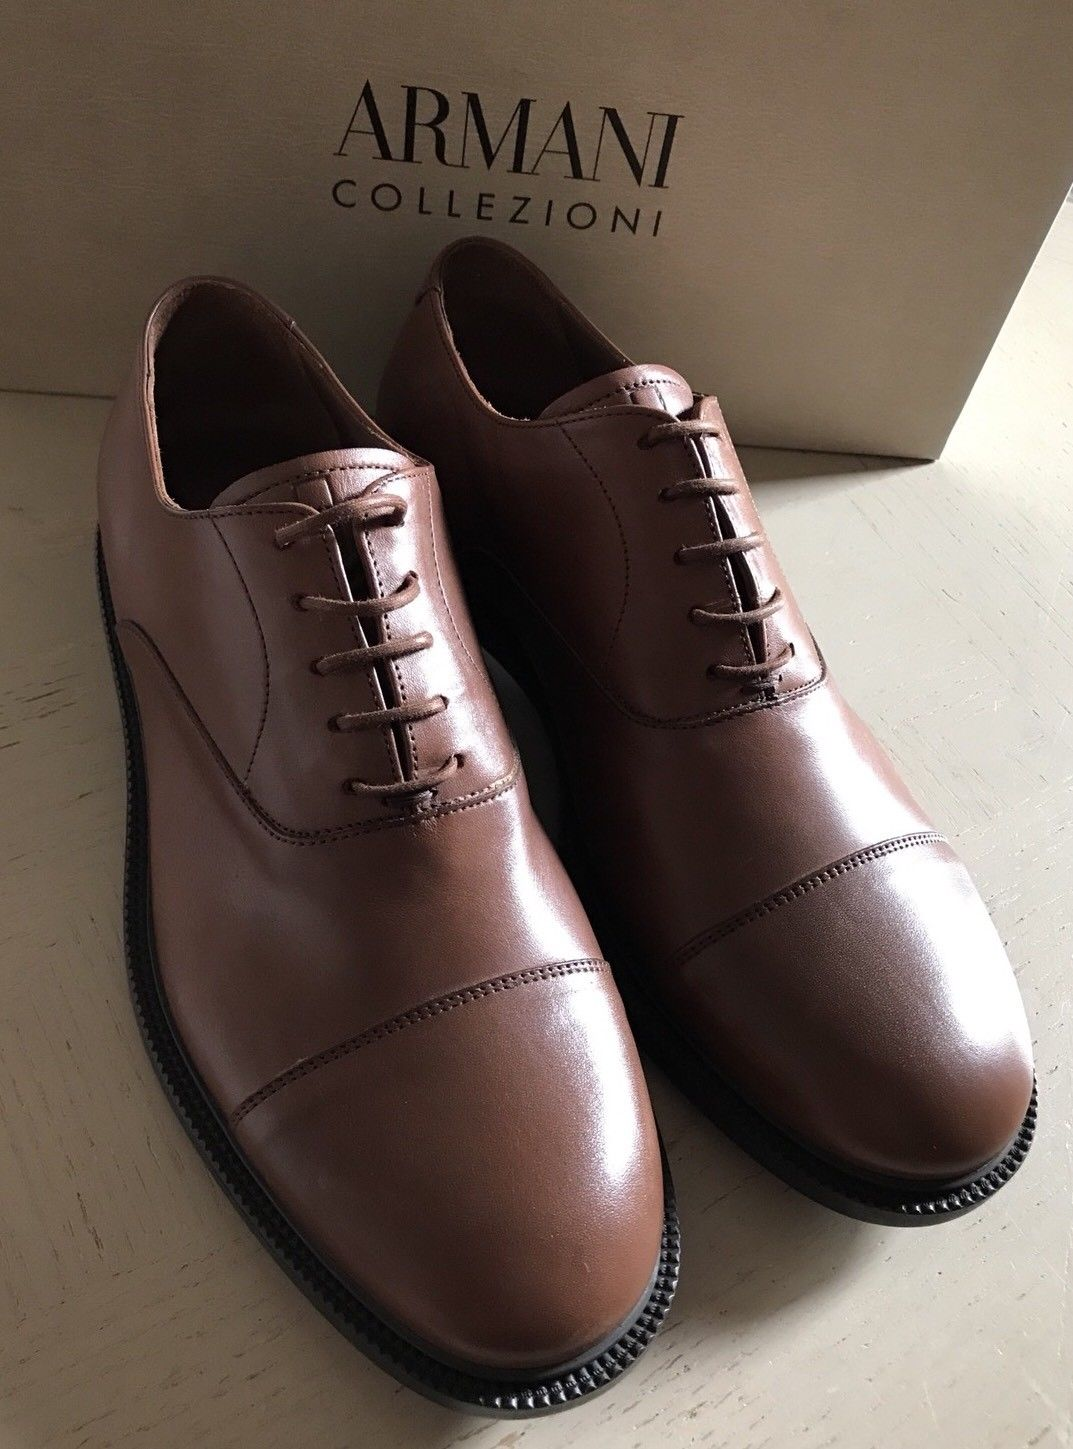 New $675 Armani Collezioni Mens Leather Oxford Shoes Brown 8 US X6C050 Italy - BAYSUPERSTORE